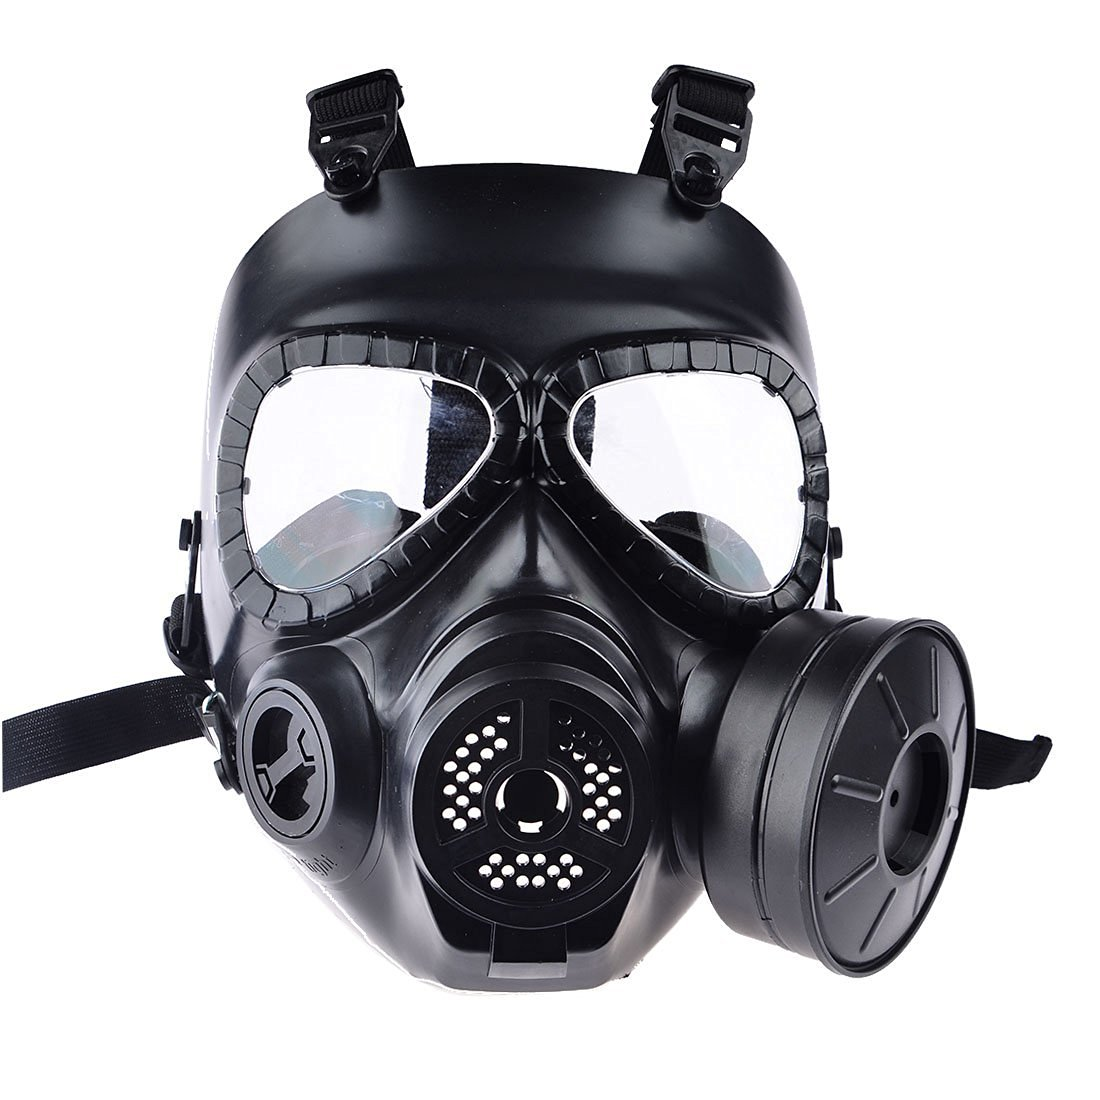 Event & Party Halloween Scary Predators Airsoft Mask Full Face Predators Masks Cs Airsoft Paintball Dummy Gas Mask Cosplay Masquerade Party Masks